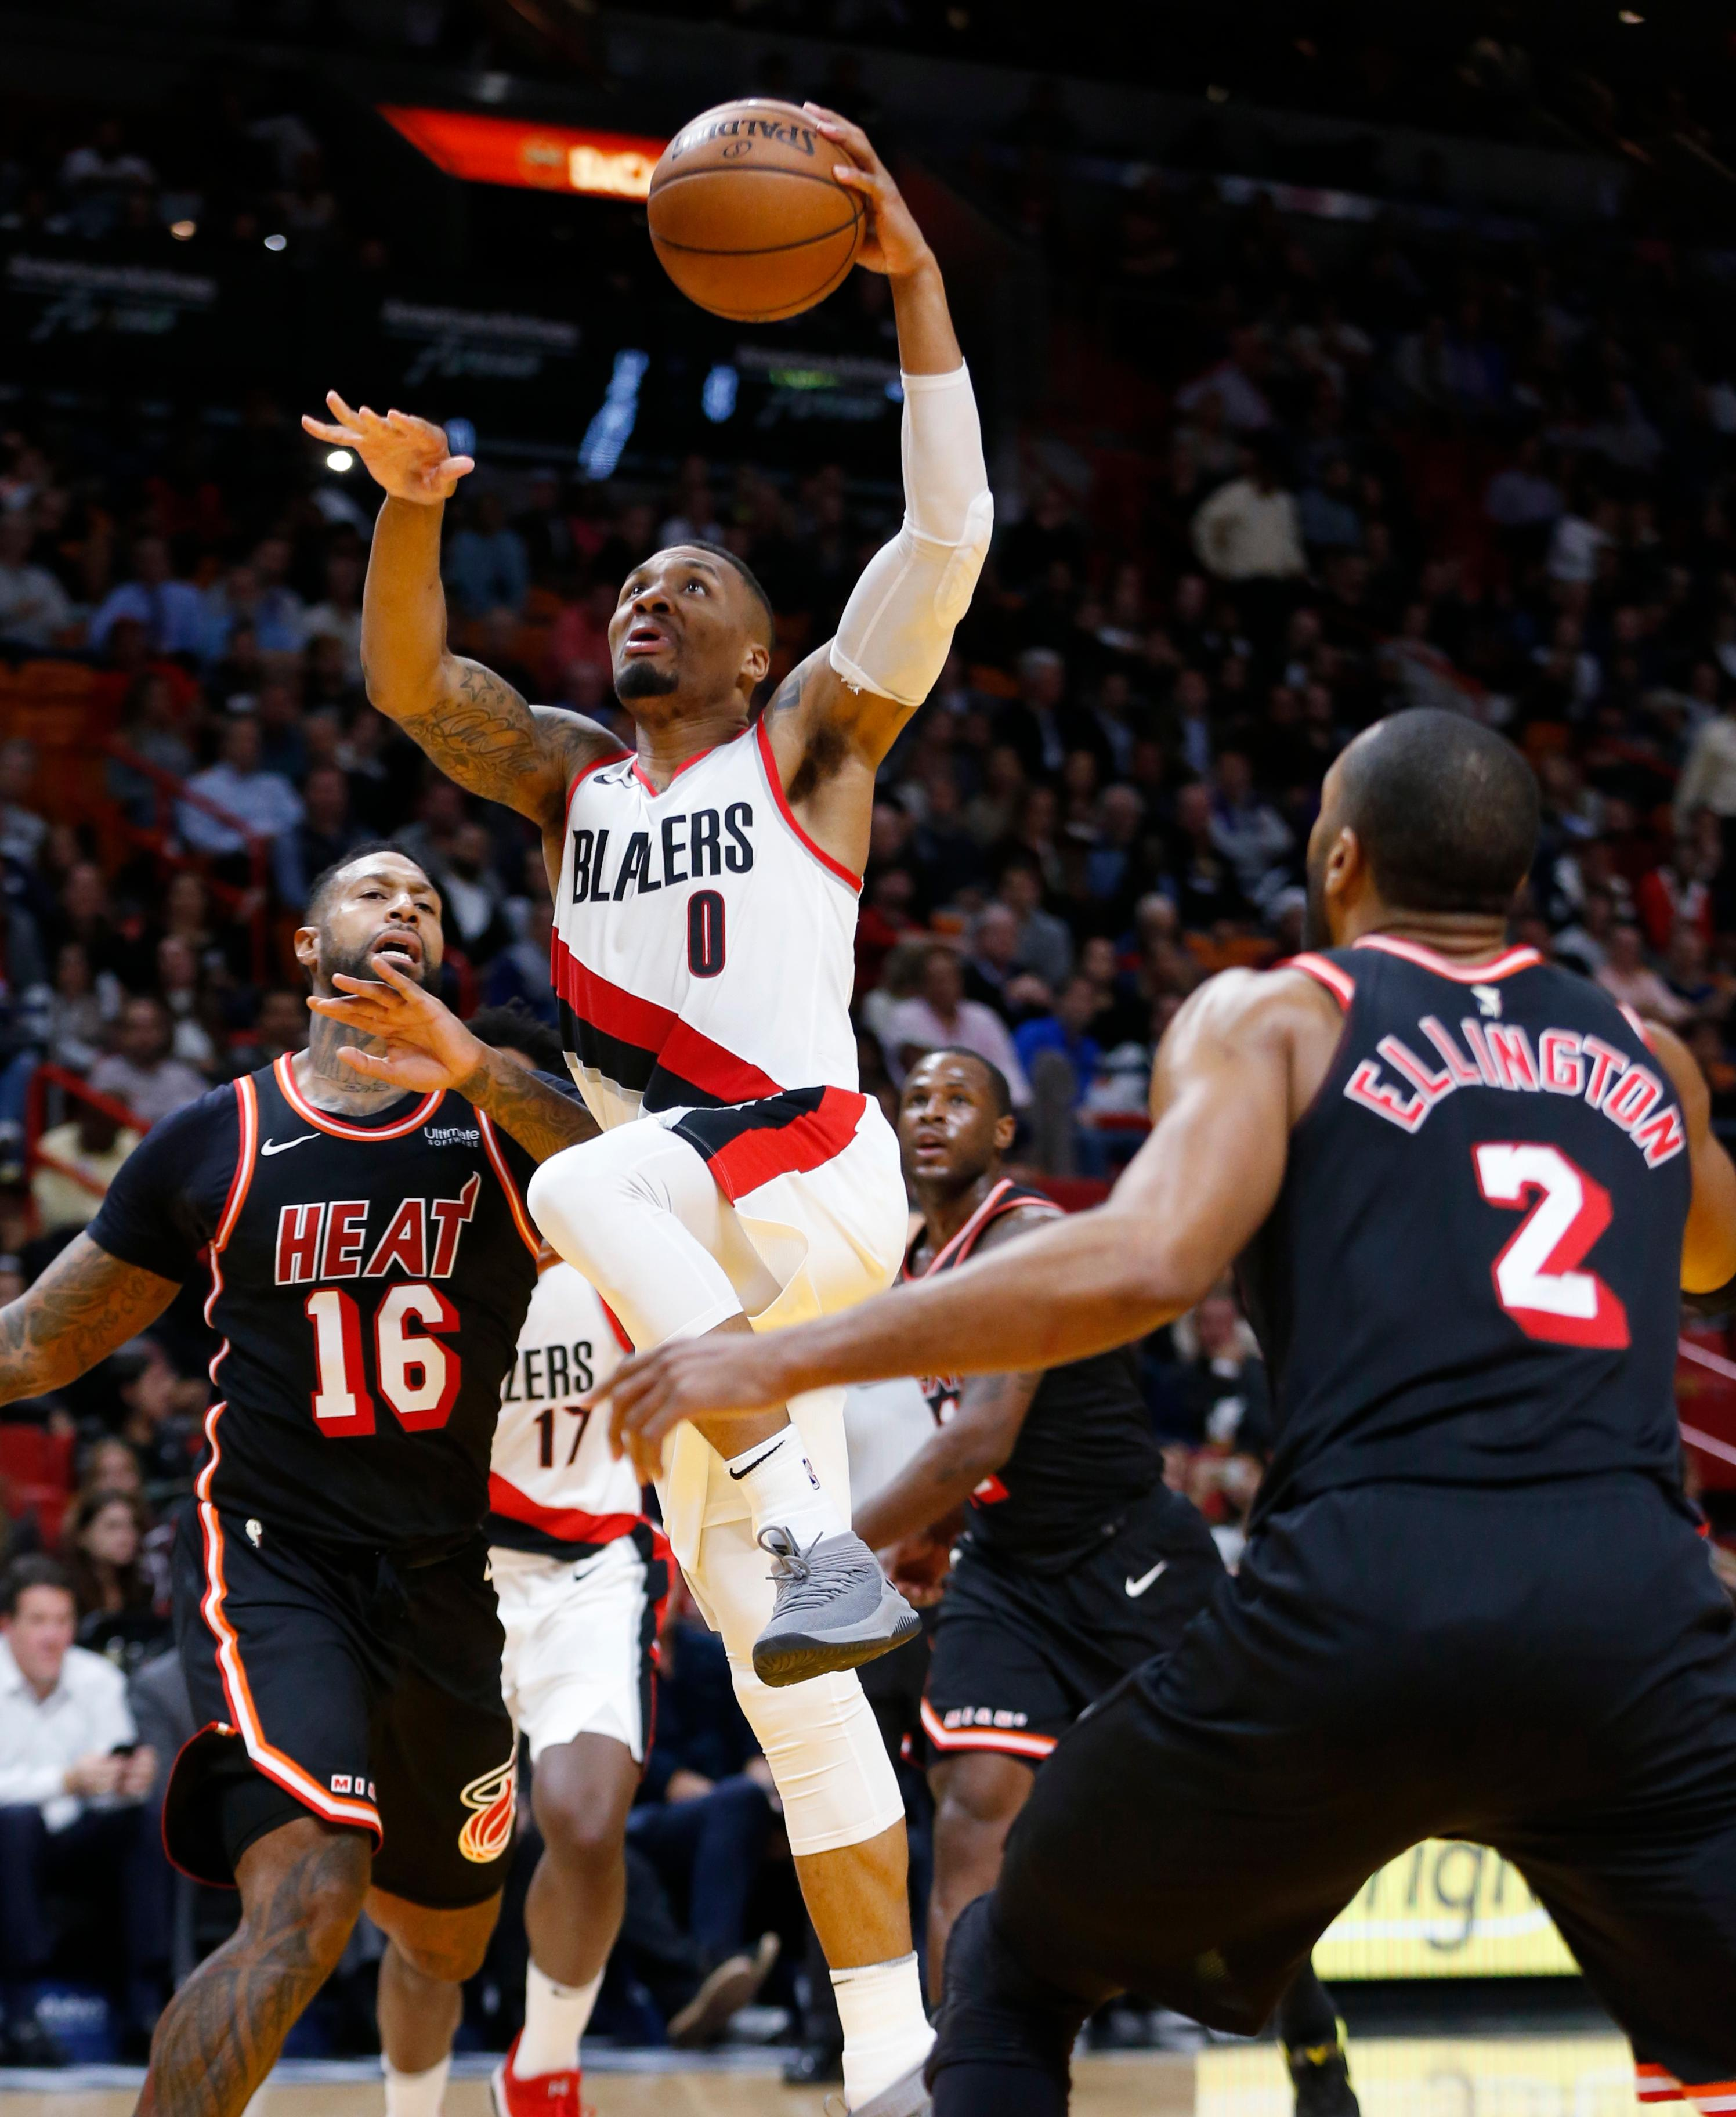 Portland Trail Blazers guard Damian Lillard (0) goes up for a shot against Miami Heat forward James Johnson (16) and guard Wayne Ellington (2) during the second half of an NBA basketball game, Wednesday, Dec. 13, 2017, in Miami. Lillard scored seven of his 18 points in the final 3:16 as the Trail Blazers defeated the Heat 102-95. (AP Photo/Wilfredo Lee)